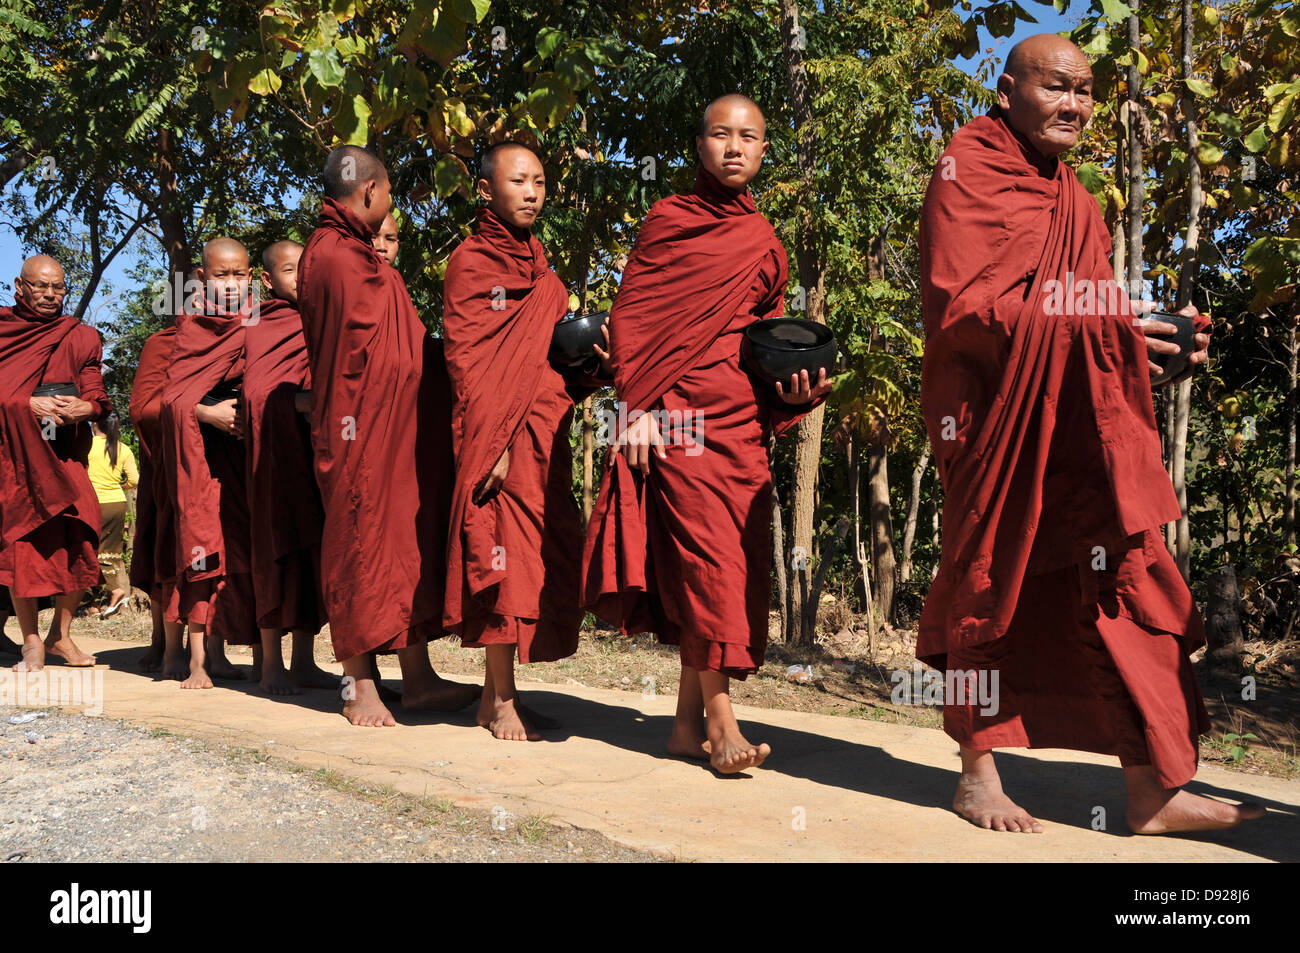 Buddhist Monks collecting alms at December full moon festival, Nyaungshwe, Inle Lake, Shan State, Myanmar Stock Photo